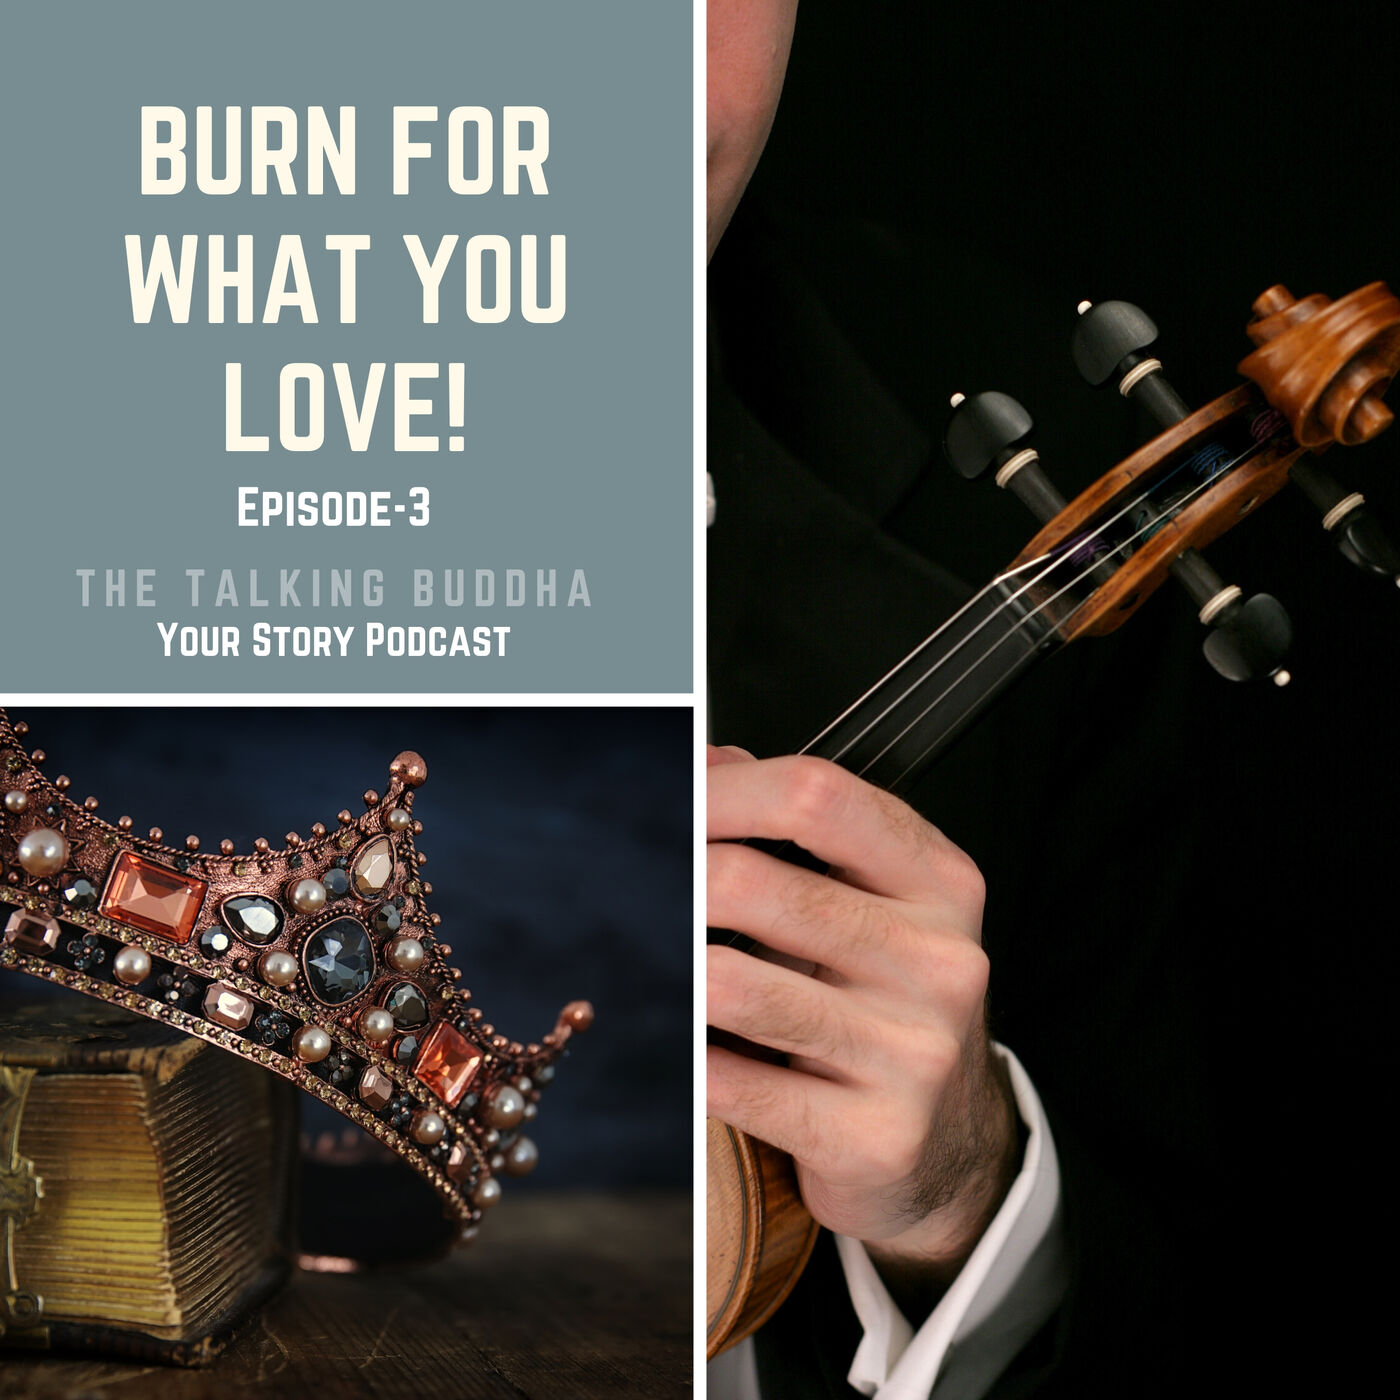 Burn for what you Love!